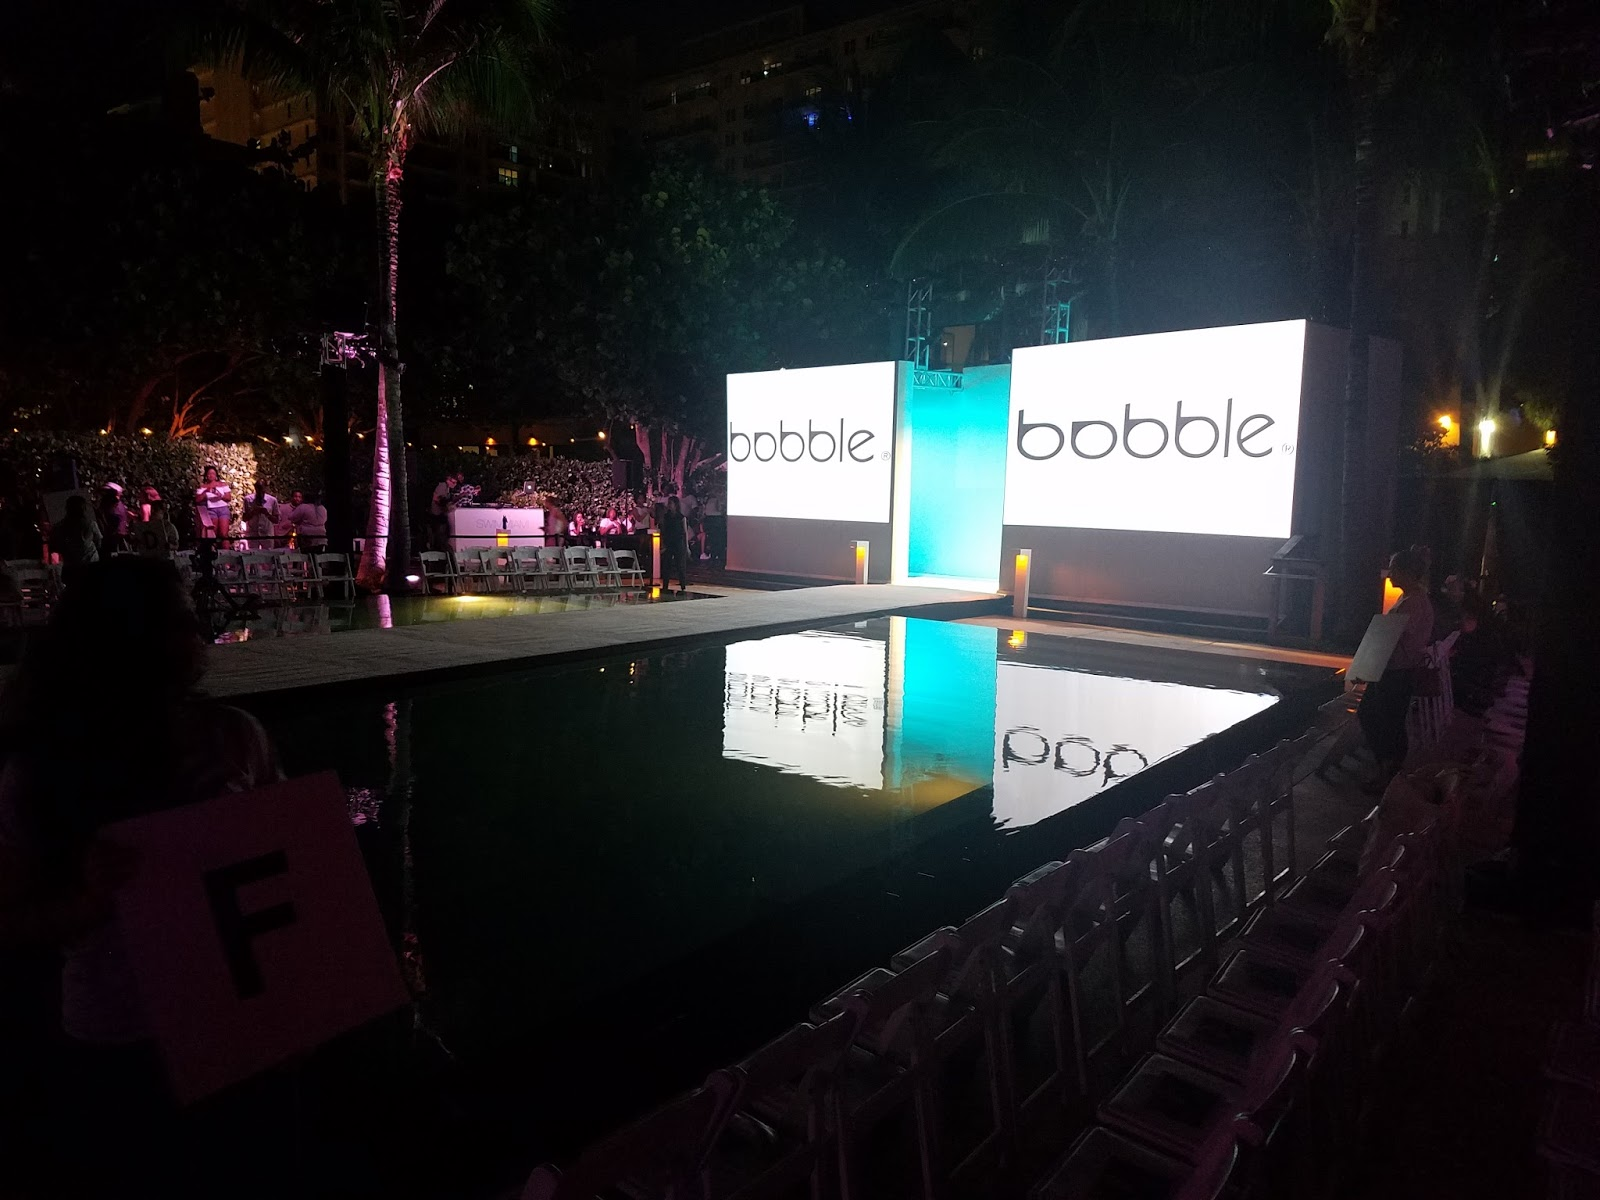 sensational design miami home and design show. These two sensational lines debuted their SS17 collections at the W Hotel  on South Beach and it was extravagant to say least That s COOL Fashion Art Design The Best 100 Sensational Miami Home And Show Image